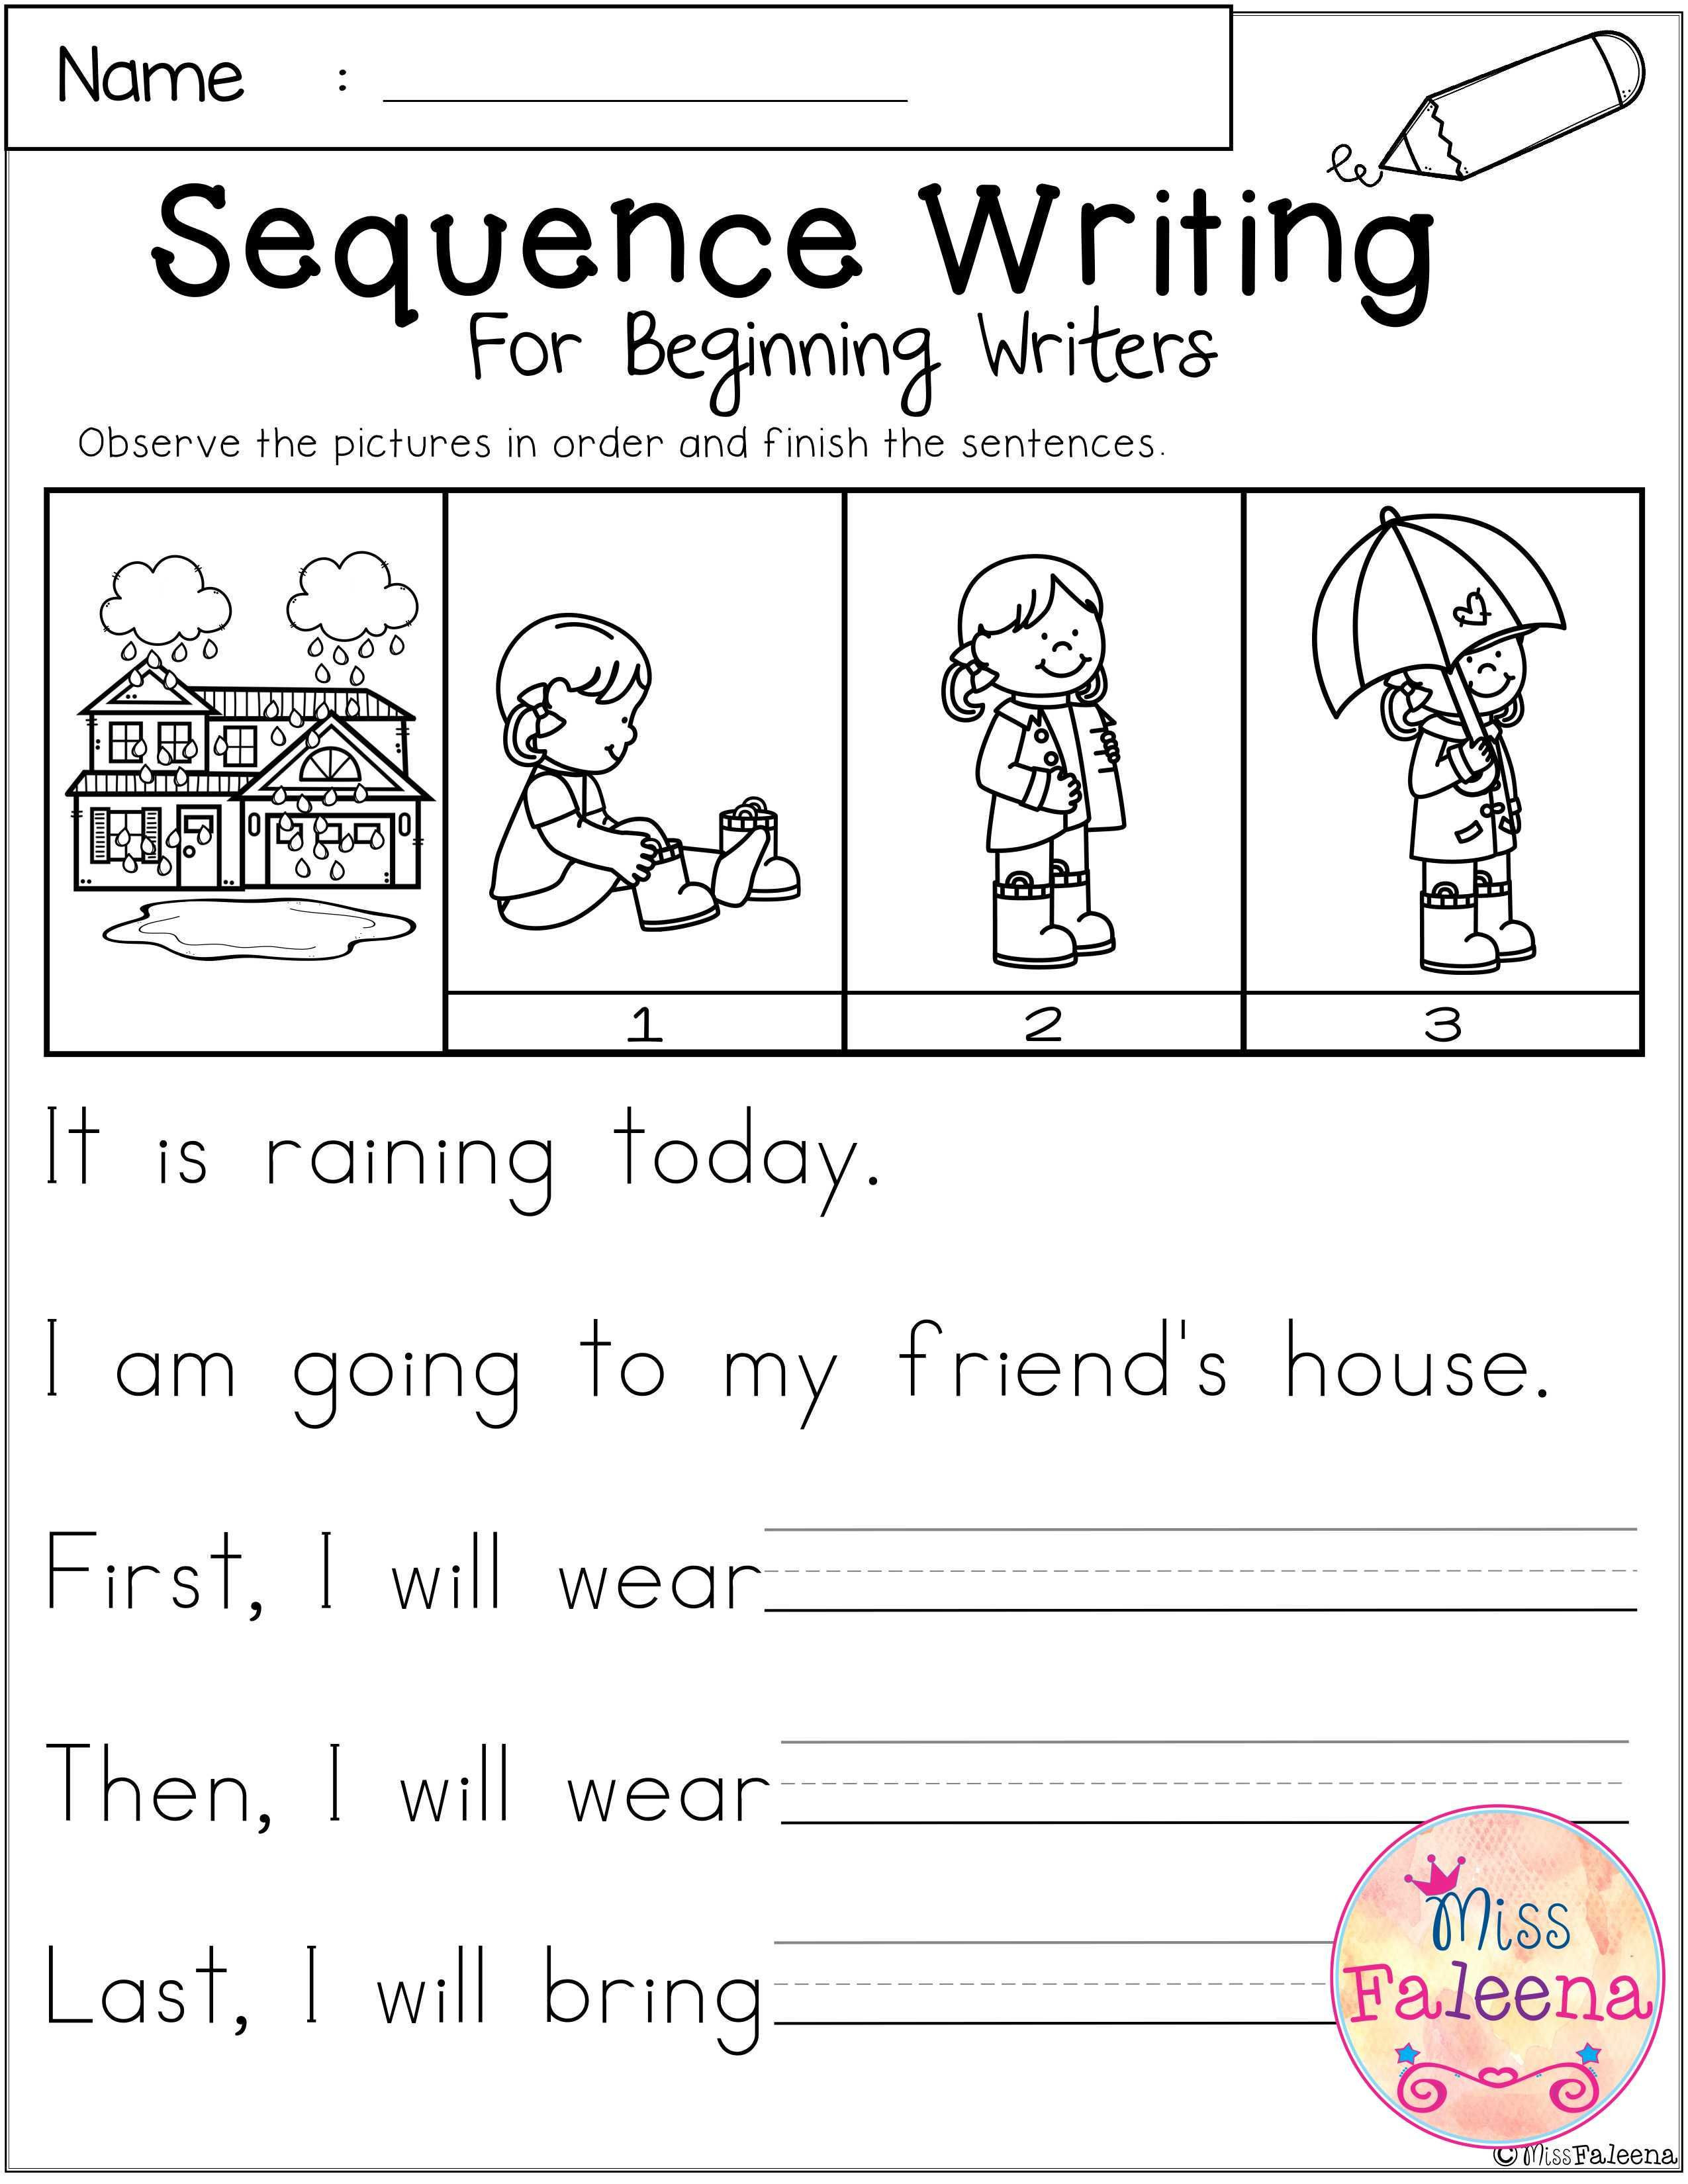 Sequencing Worksheet Kindergarten March Sequence Writing for Beginning Writers